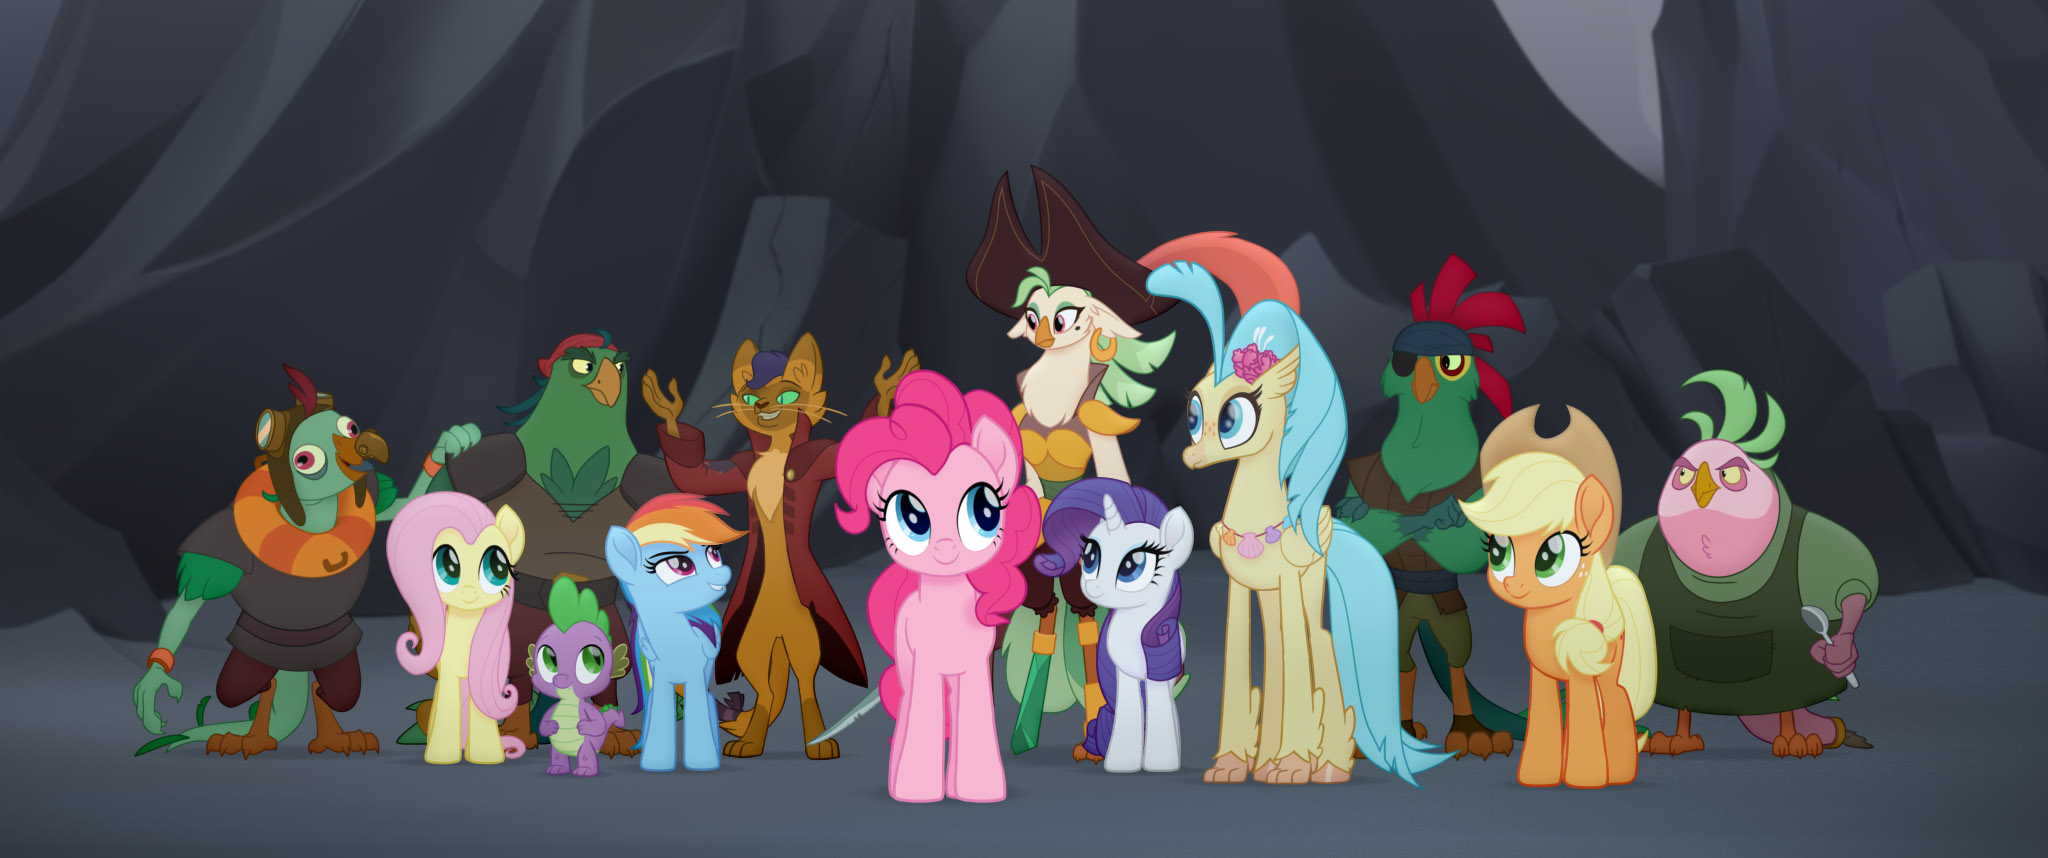 My-Little-Pony-The-Movie-review